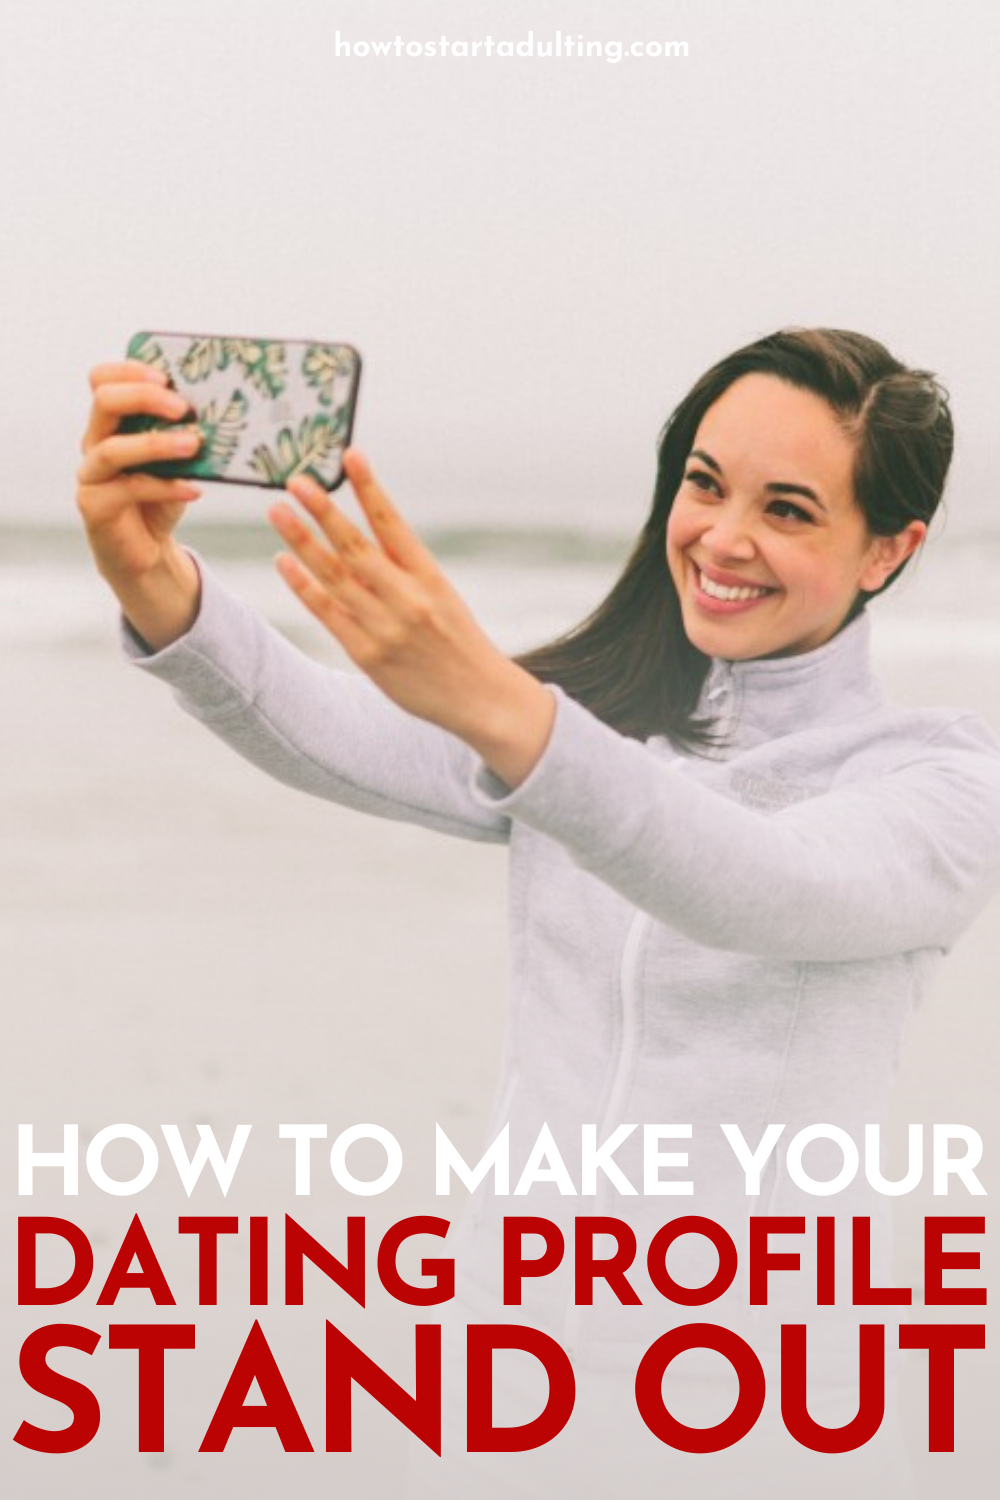 How To Make Your Dating Profile Stand Out To Get More Matches, Ways to Improve Dating App Profiles #onlinedating #dating #datingtips #datingadvice #datingapp #datingprofile